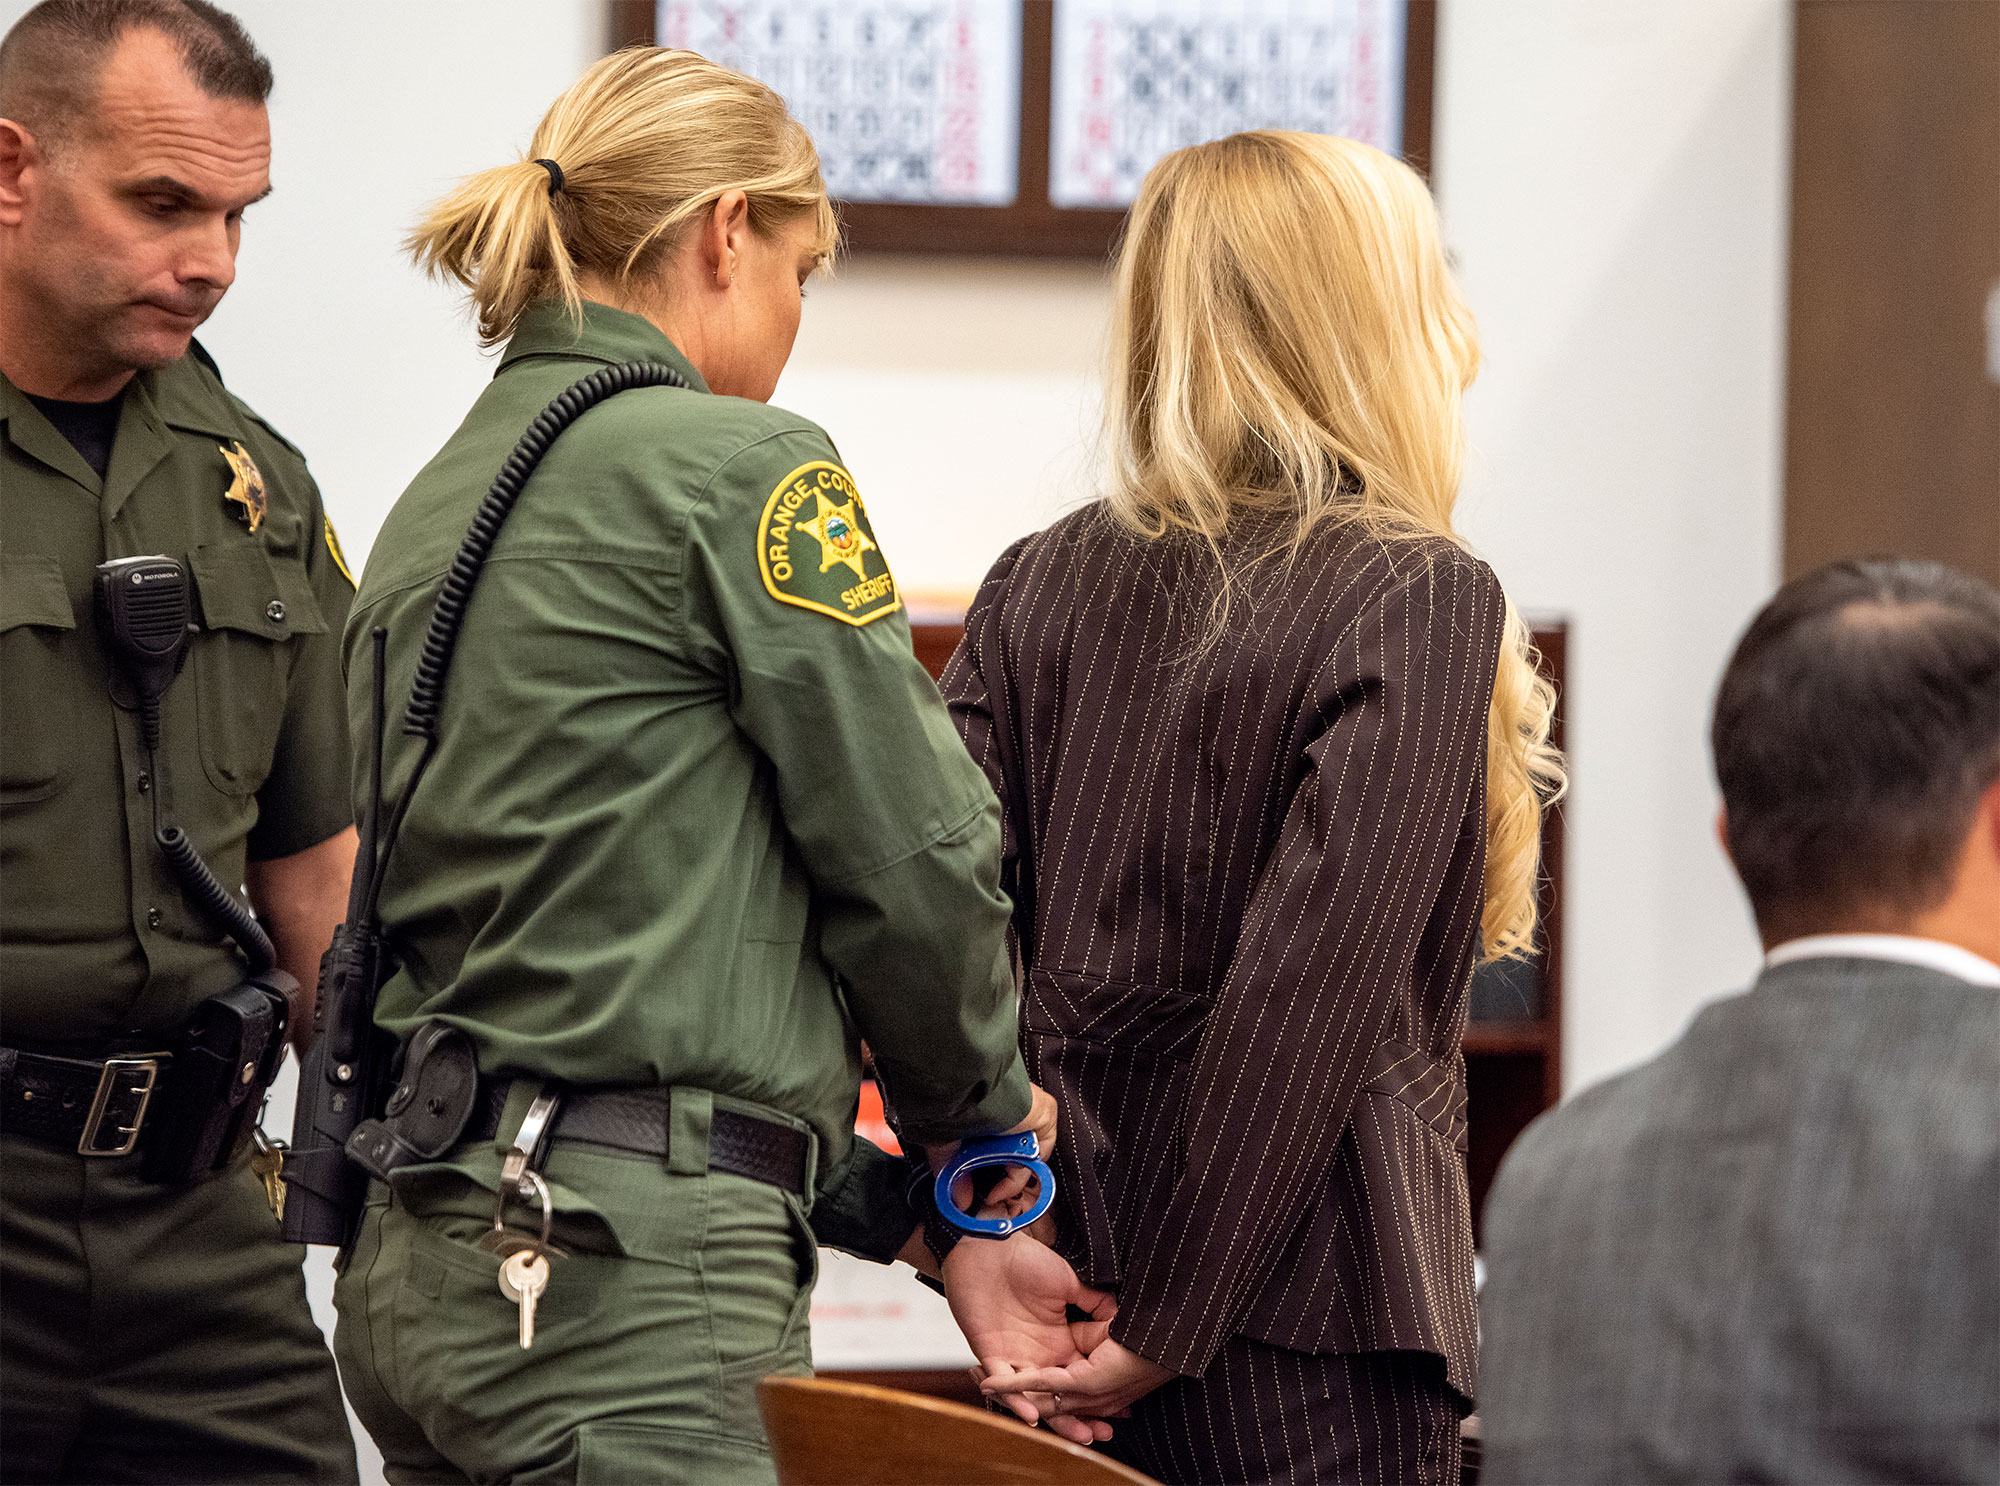 Jury Finds former Fiancee of Convicted Killer Daniel Wozniak Guilty of Being Accessory After the Fact